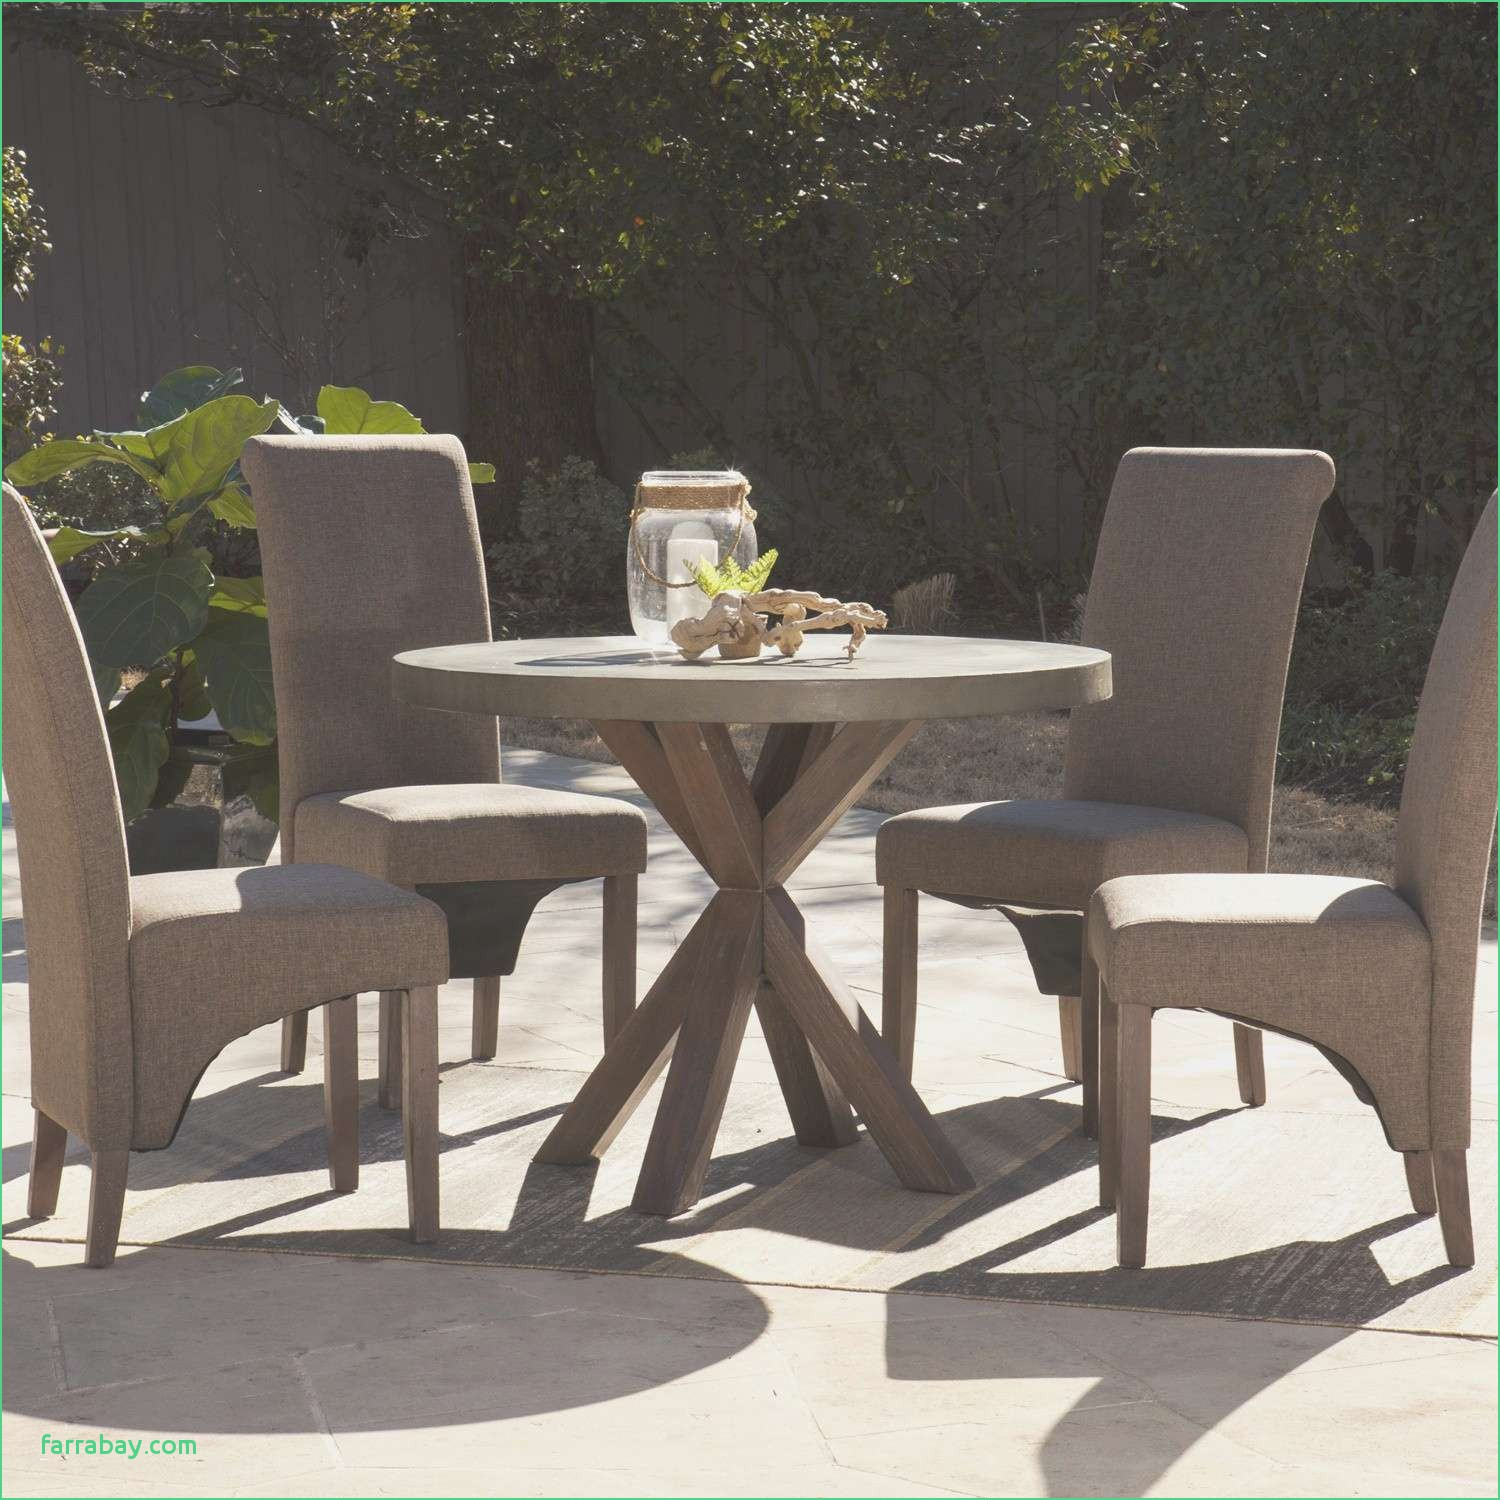 hesperide garden furniture luxury elegant outdoor table and chairs designsolutions usa of hesperide garden furniture